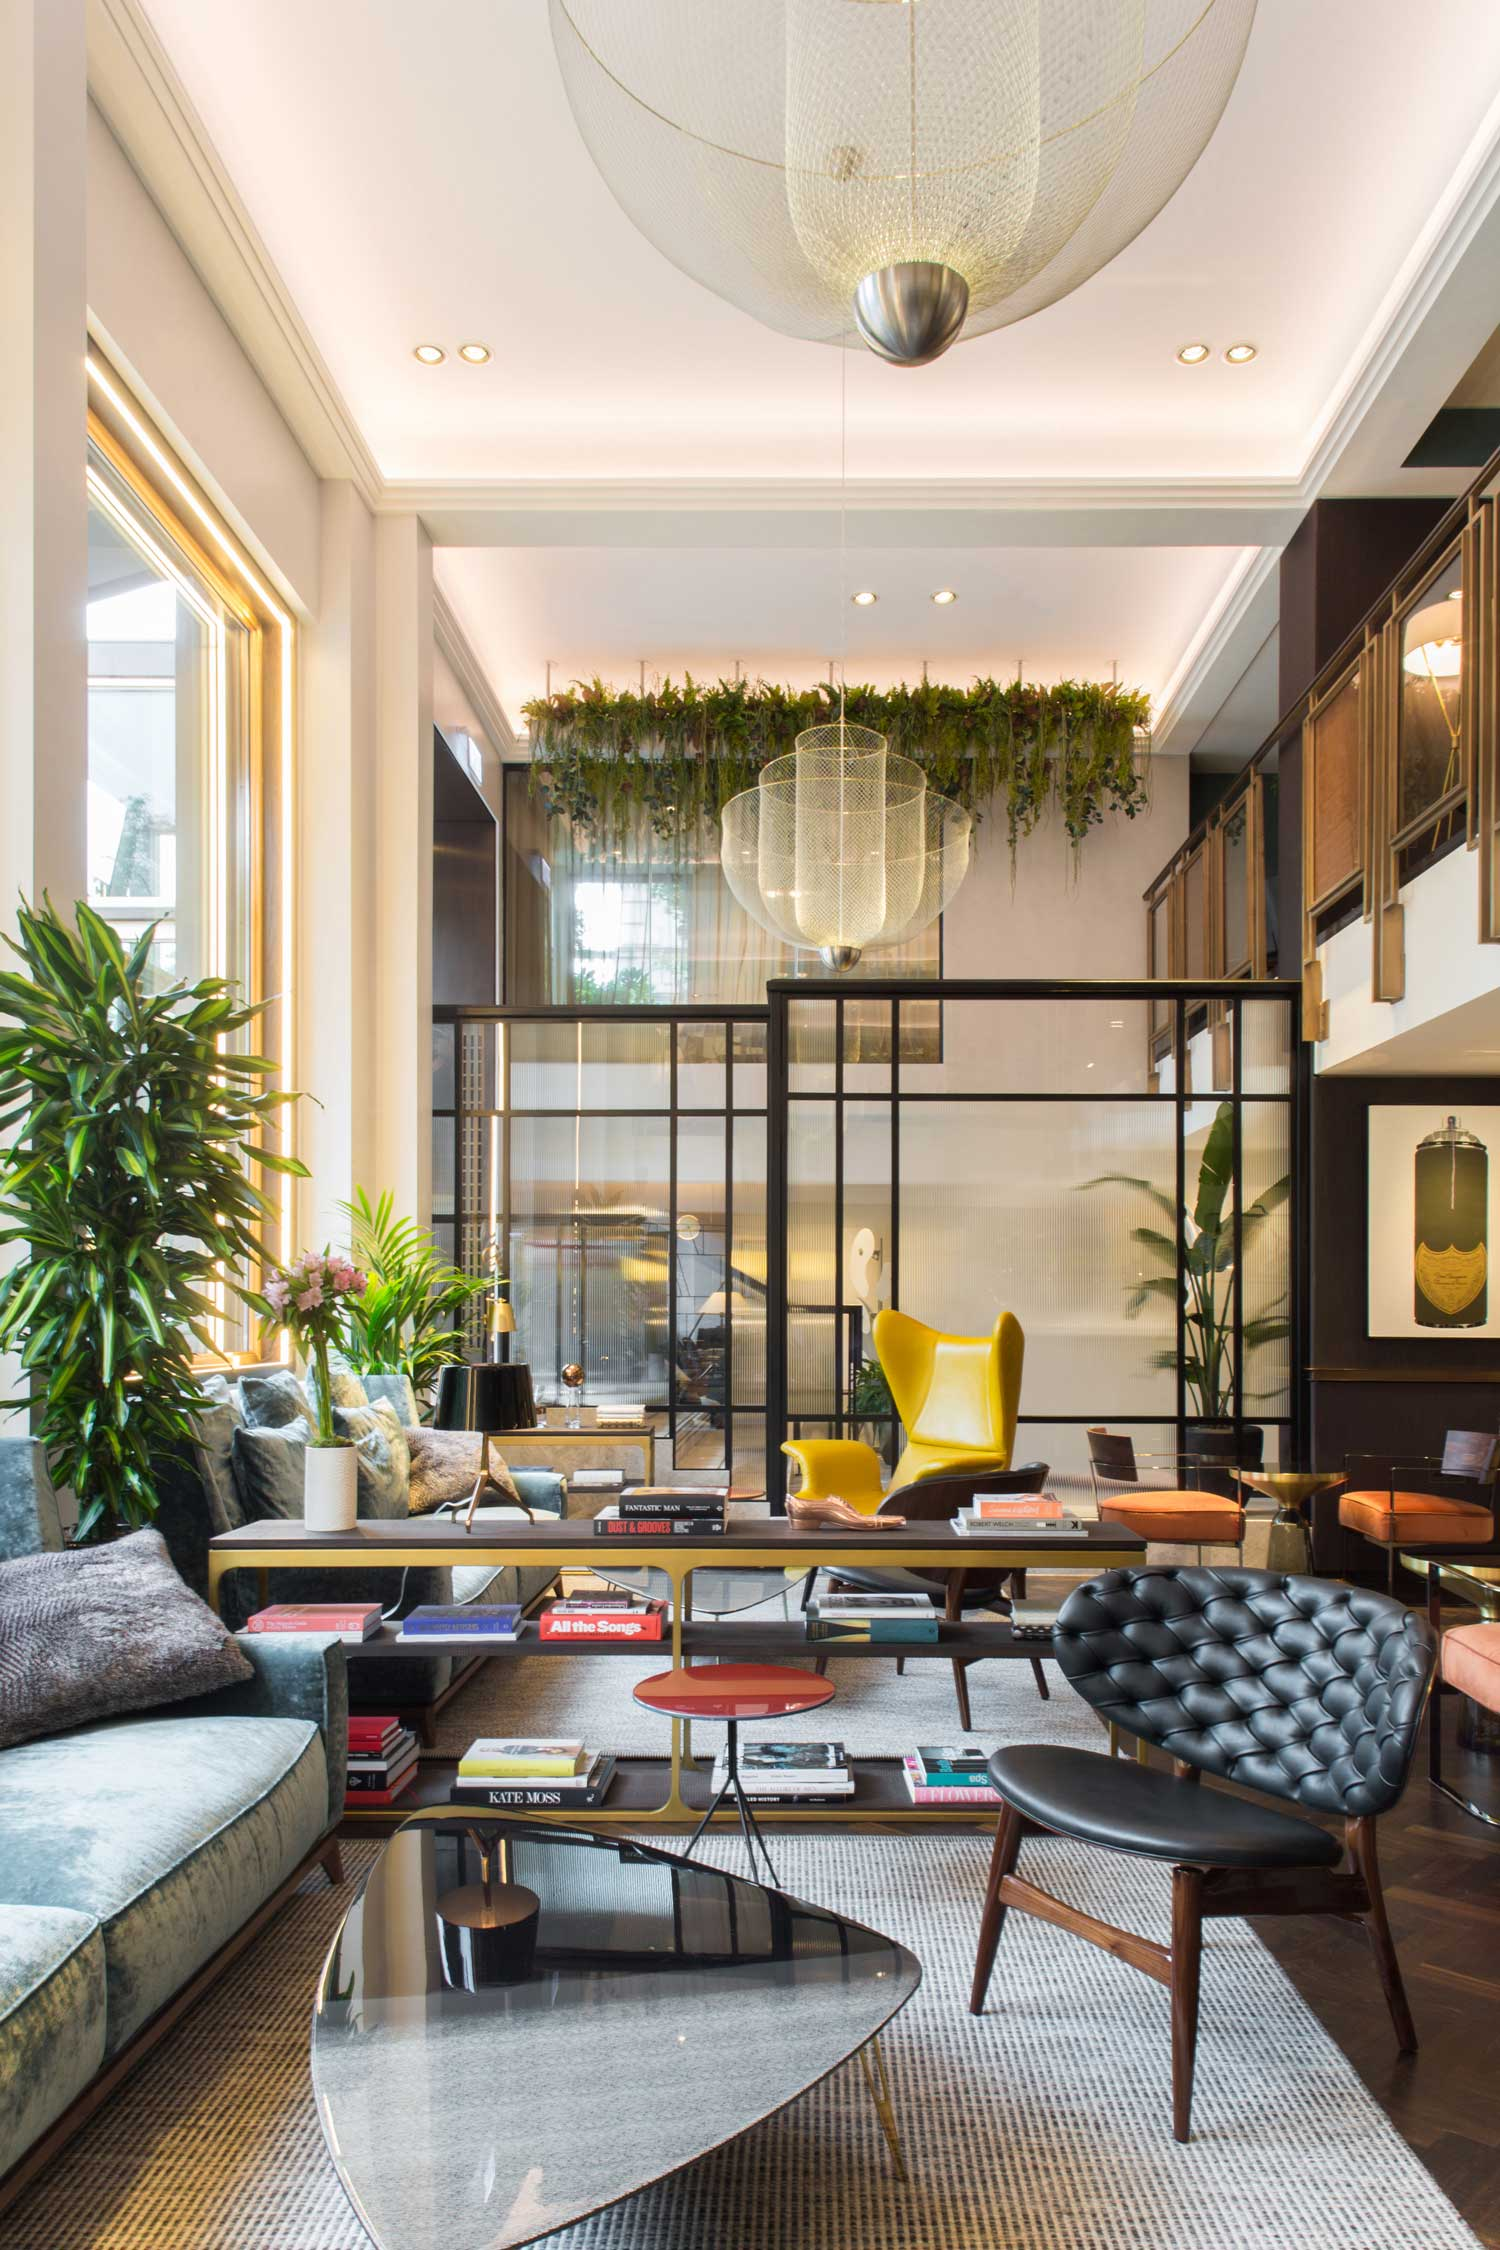 Hotel Decoration Design Athenaeum Hotel And Residences By Kinnersley Kent Design